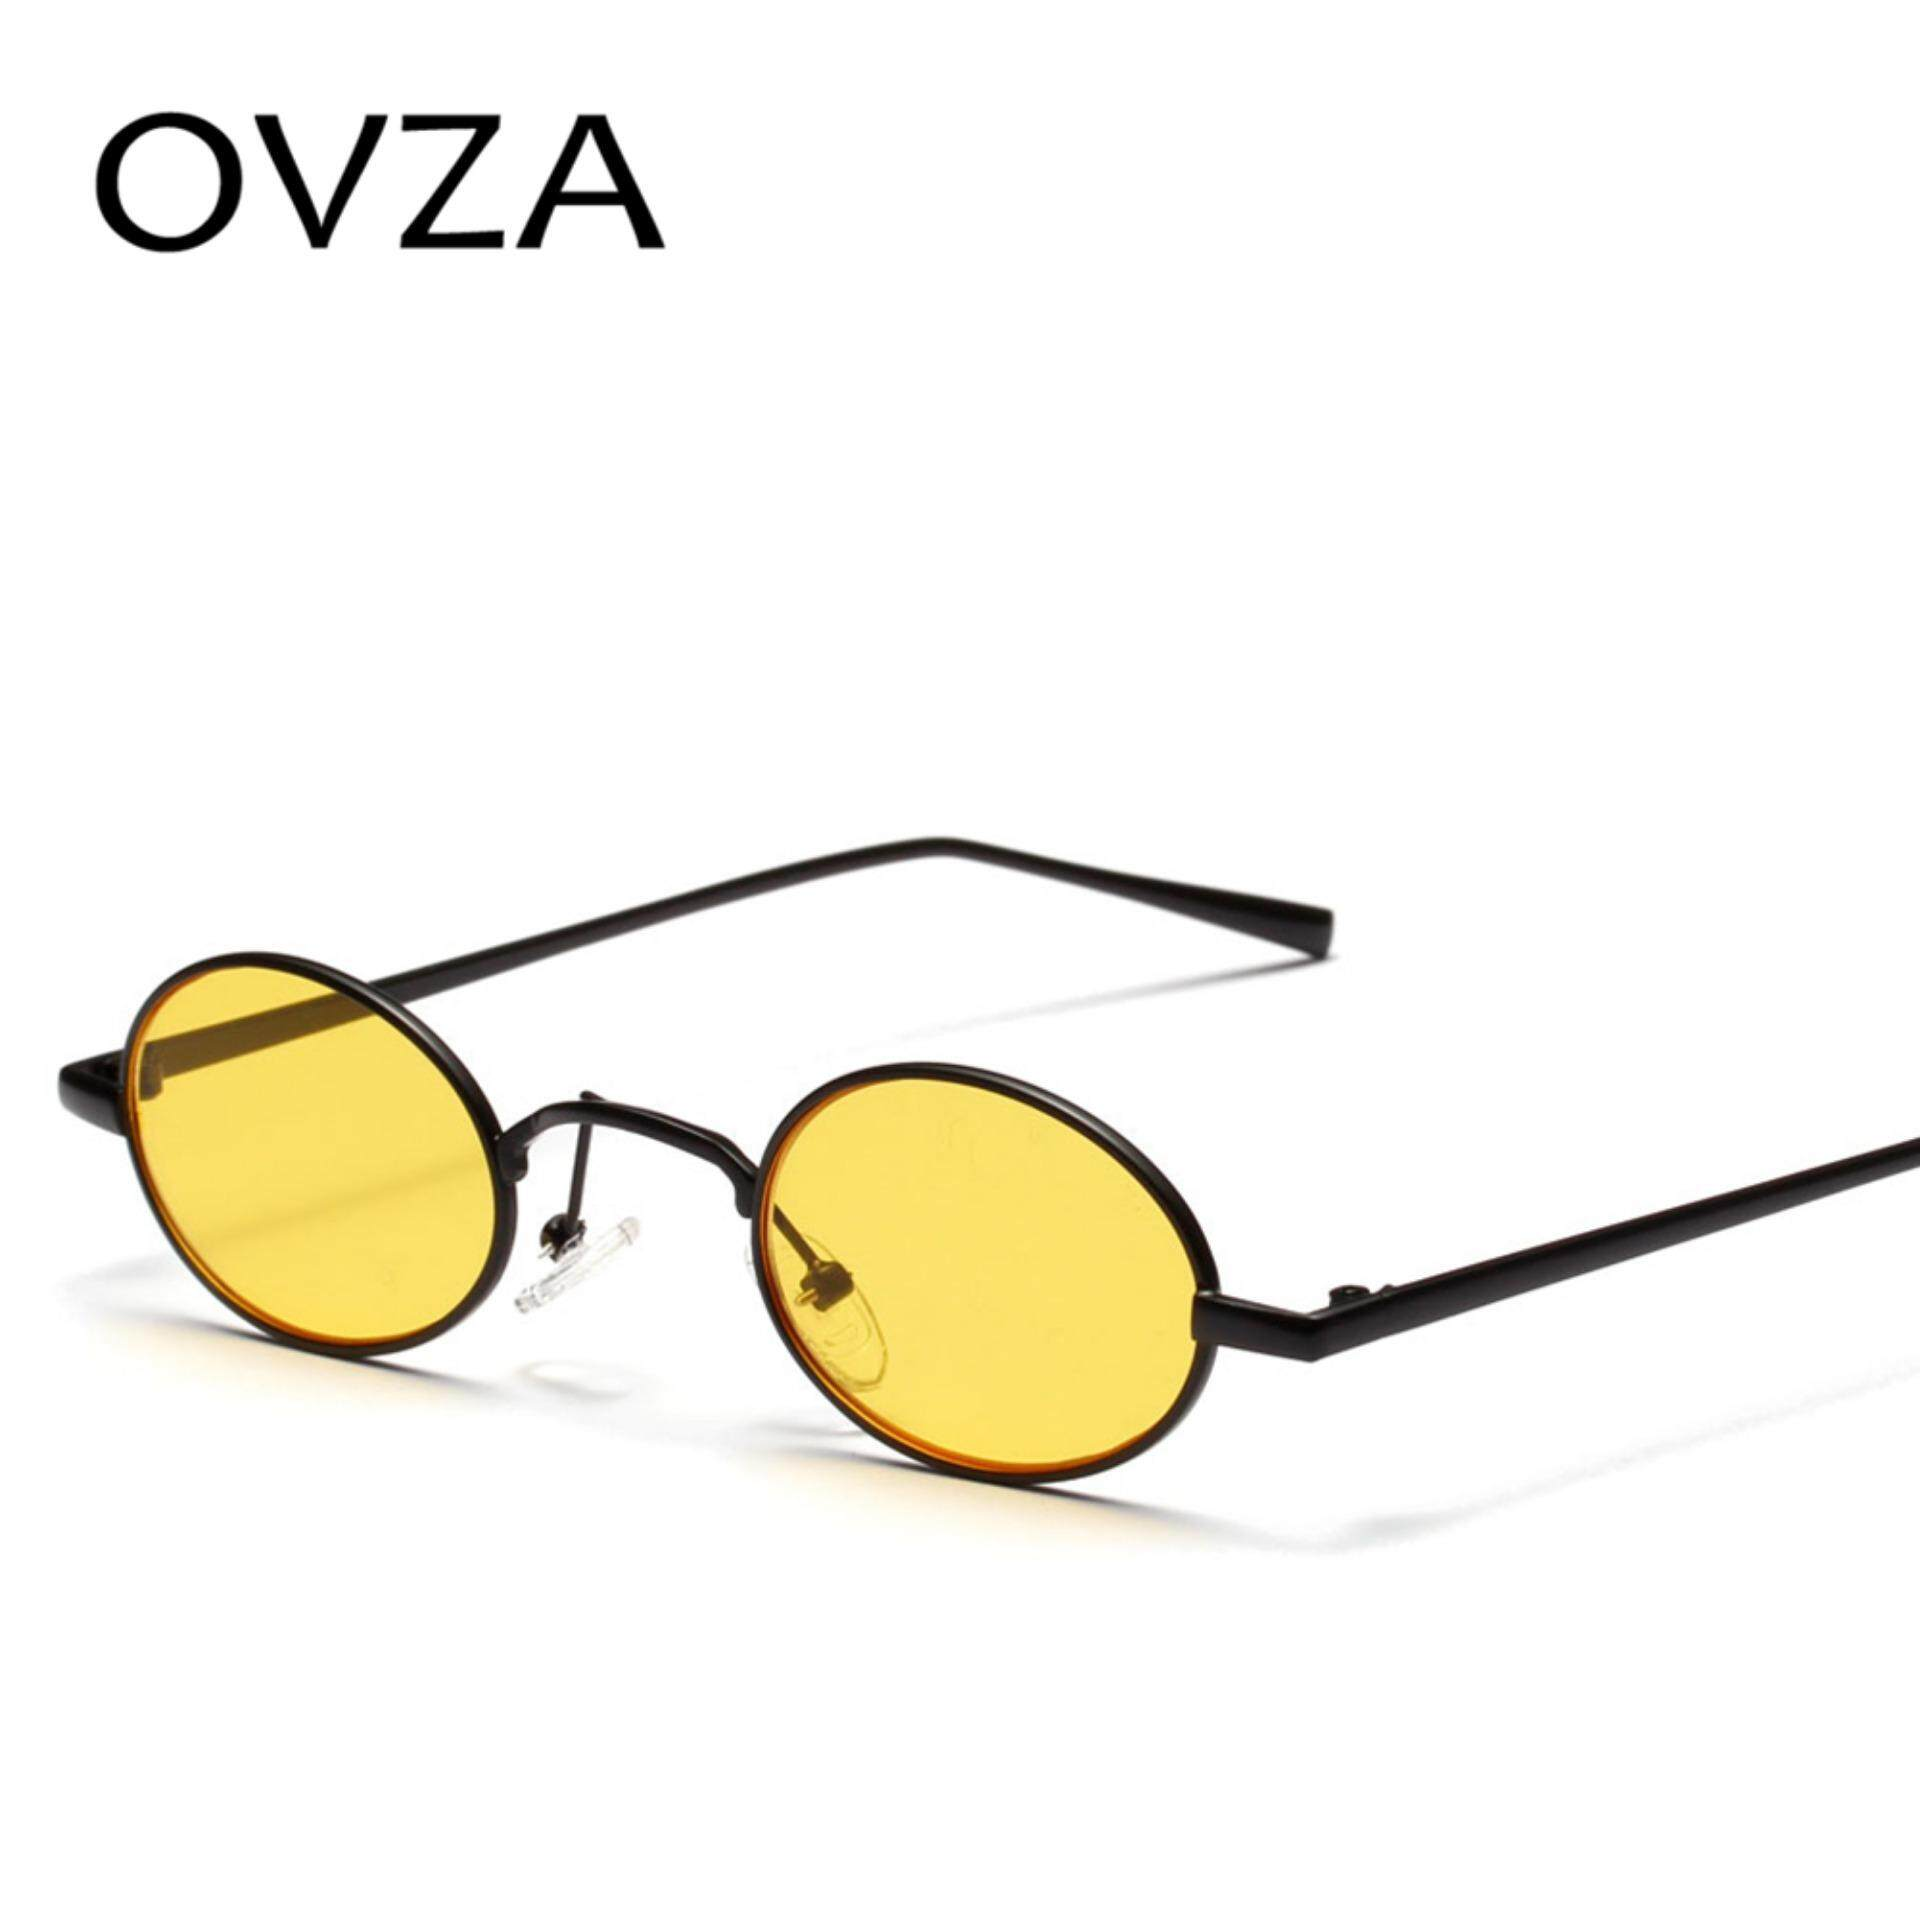 1ad202d0a3c OVZA Retro Oval Sunglasses Women Punk Style Small Sunglasses for Men Metal  Narrow Glasses Red Vintage